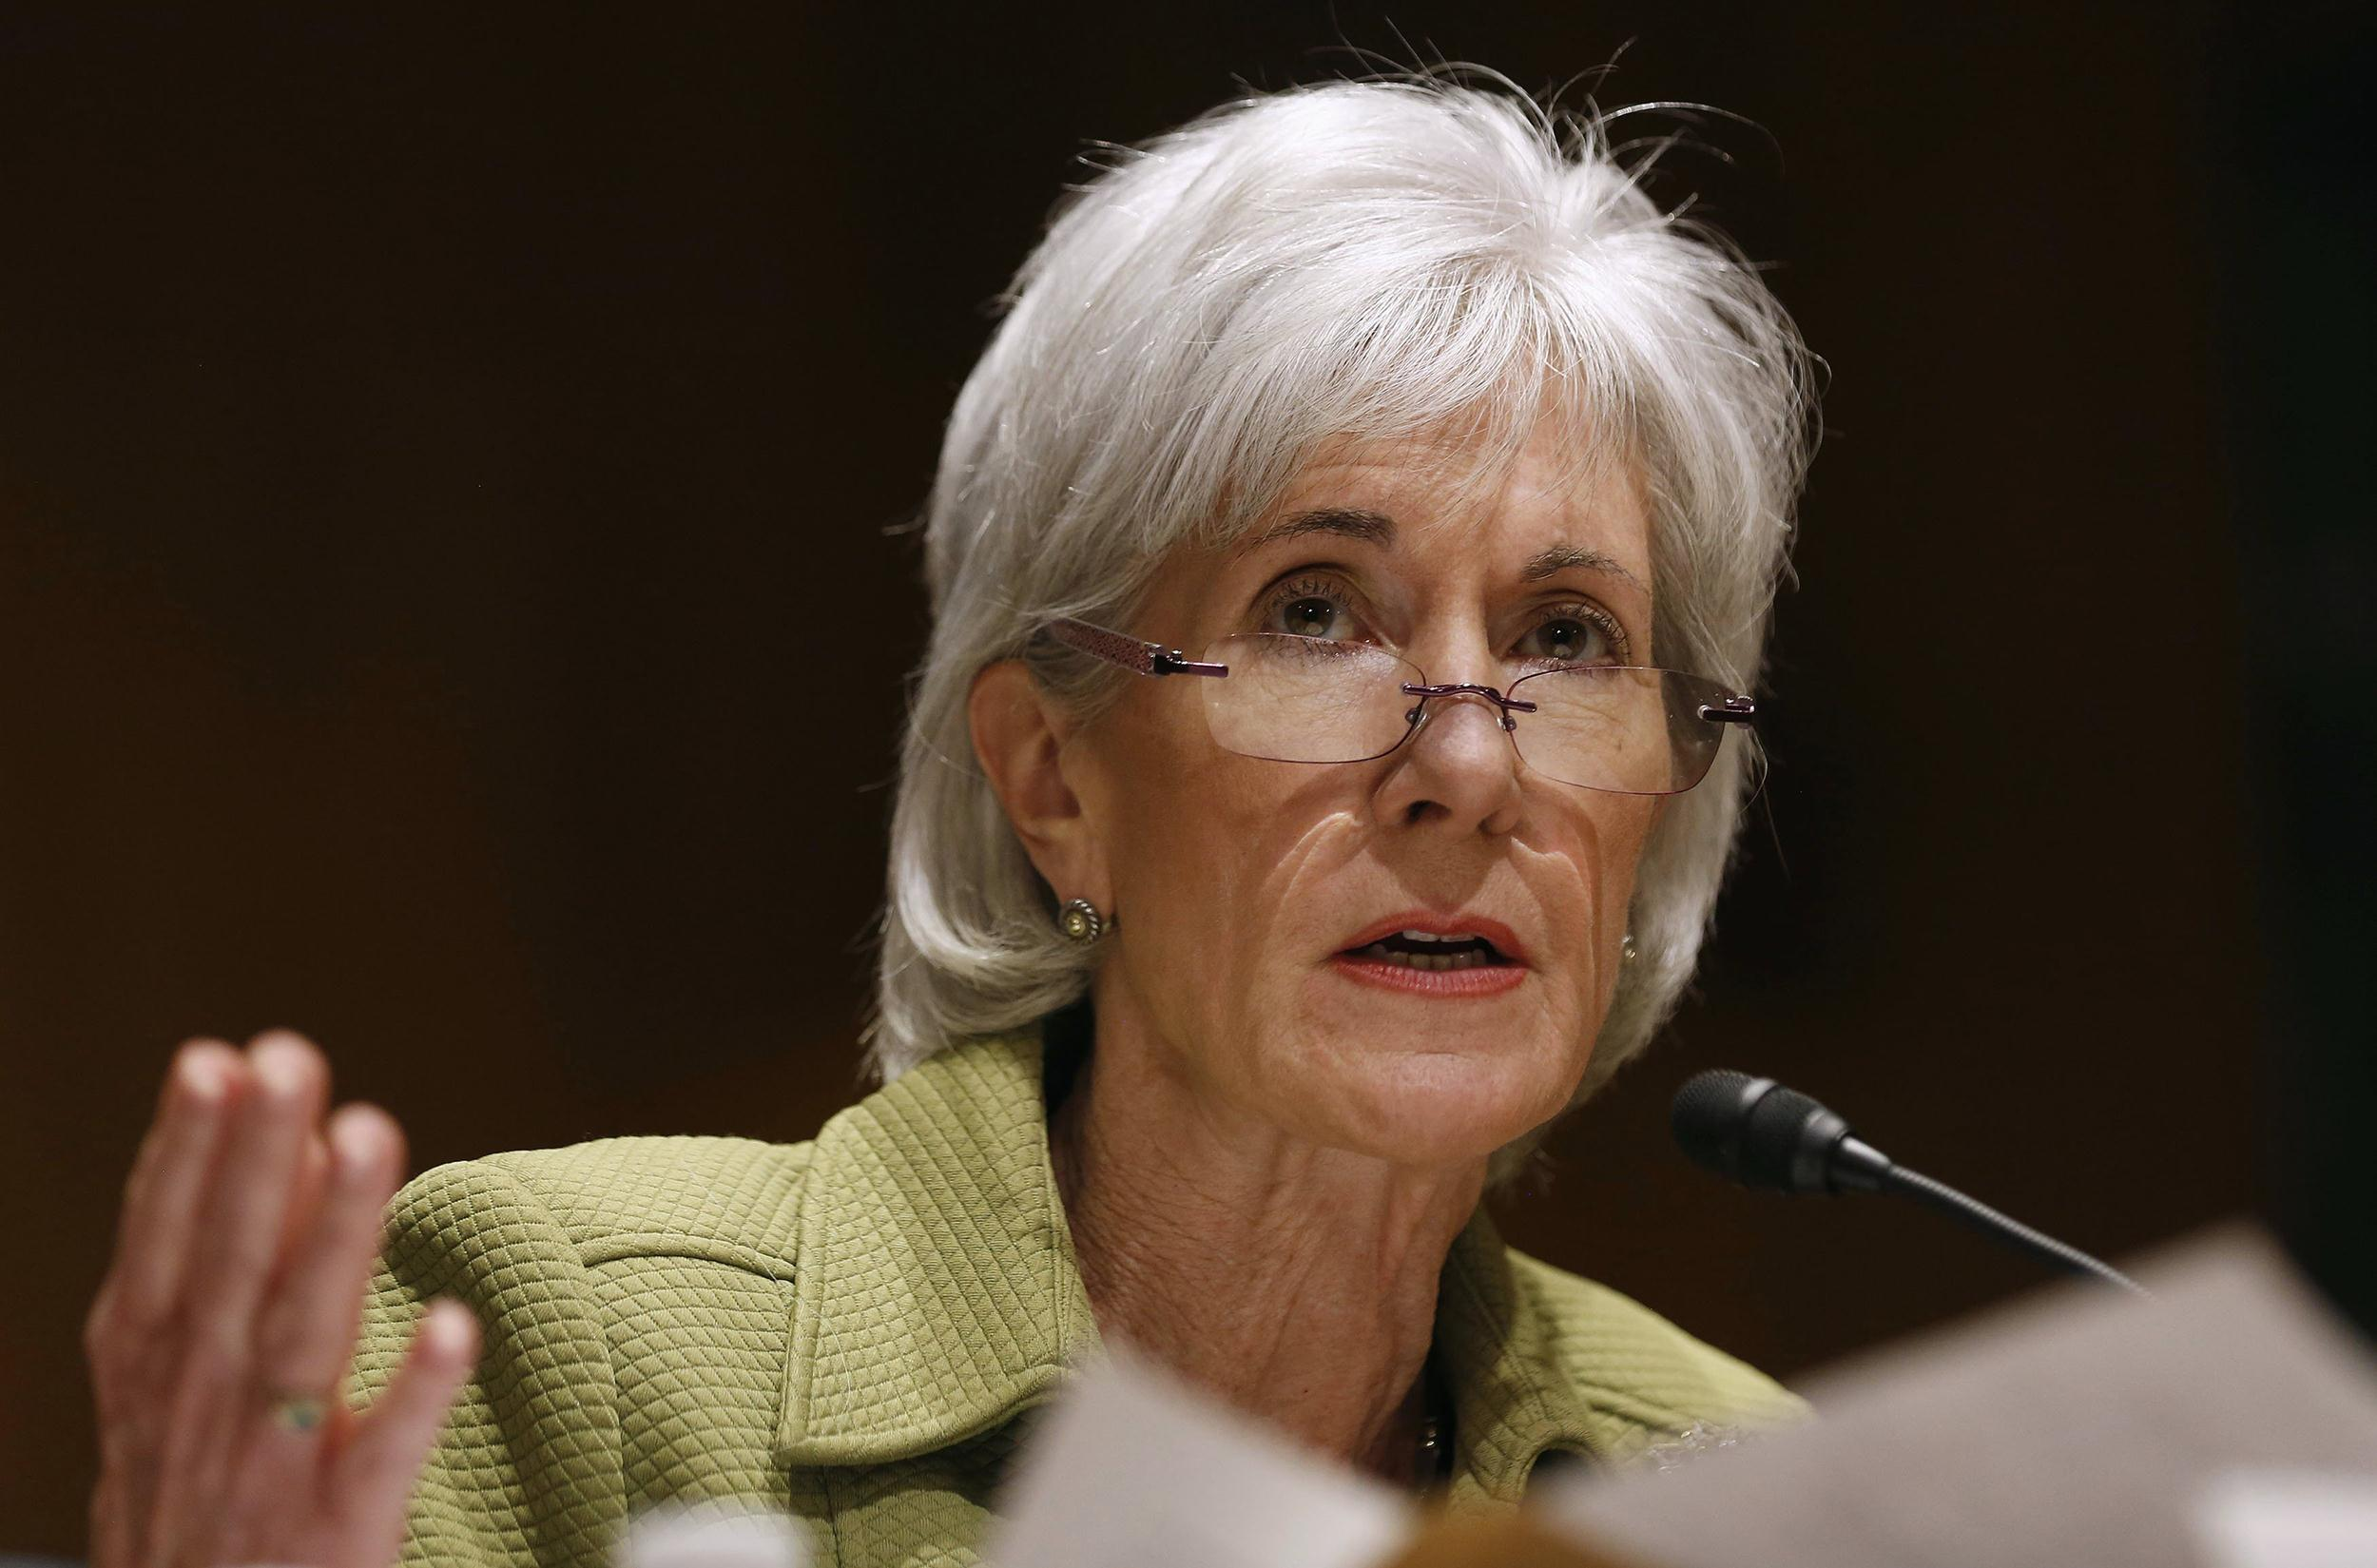 Image: U.S. Secretary of Health and Human Services Sebelius answers a question while she testifies before the Senate Finance Committee hearing on the President's budget proposal for FY2015, on Capitol Hill in Washington